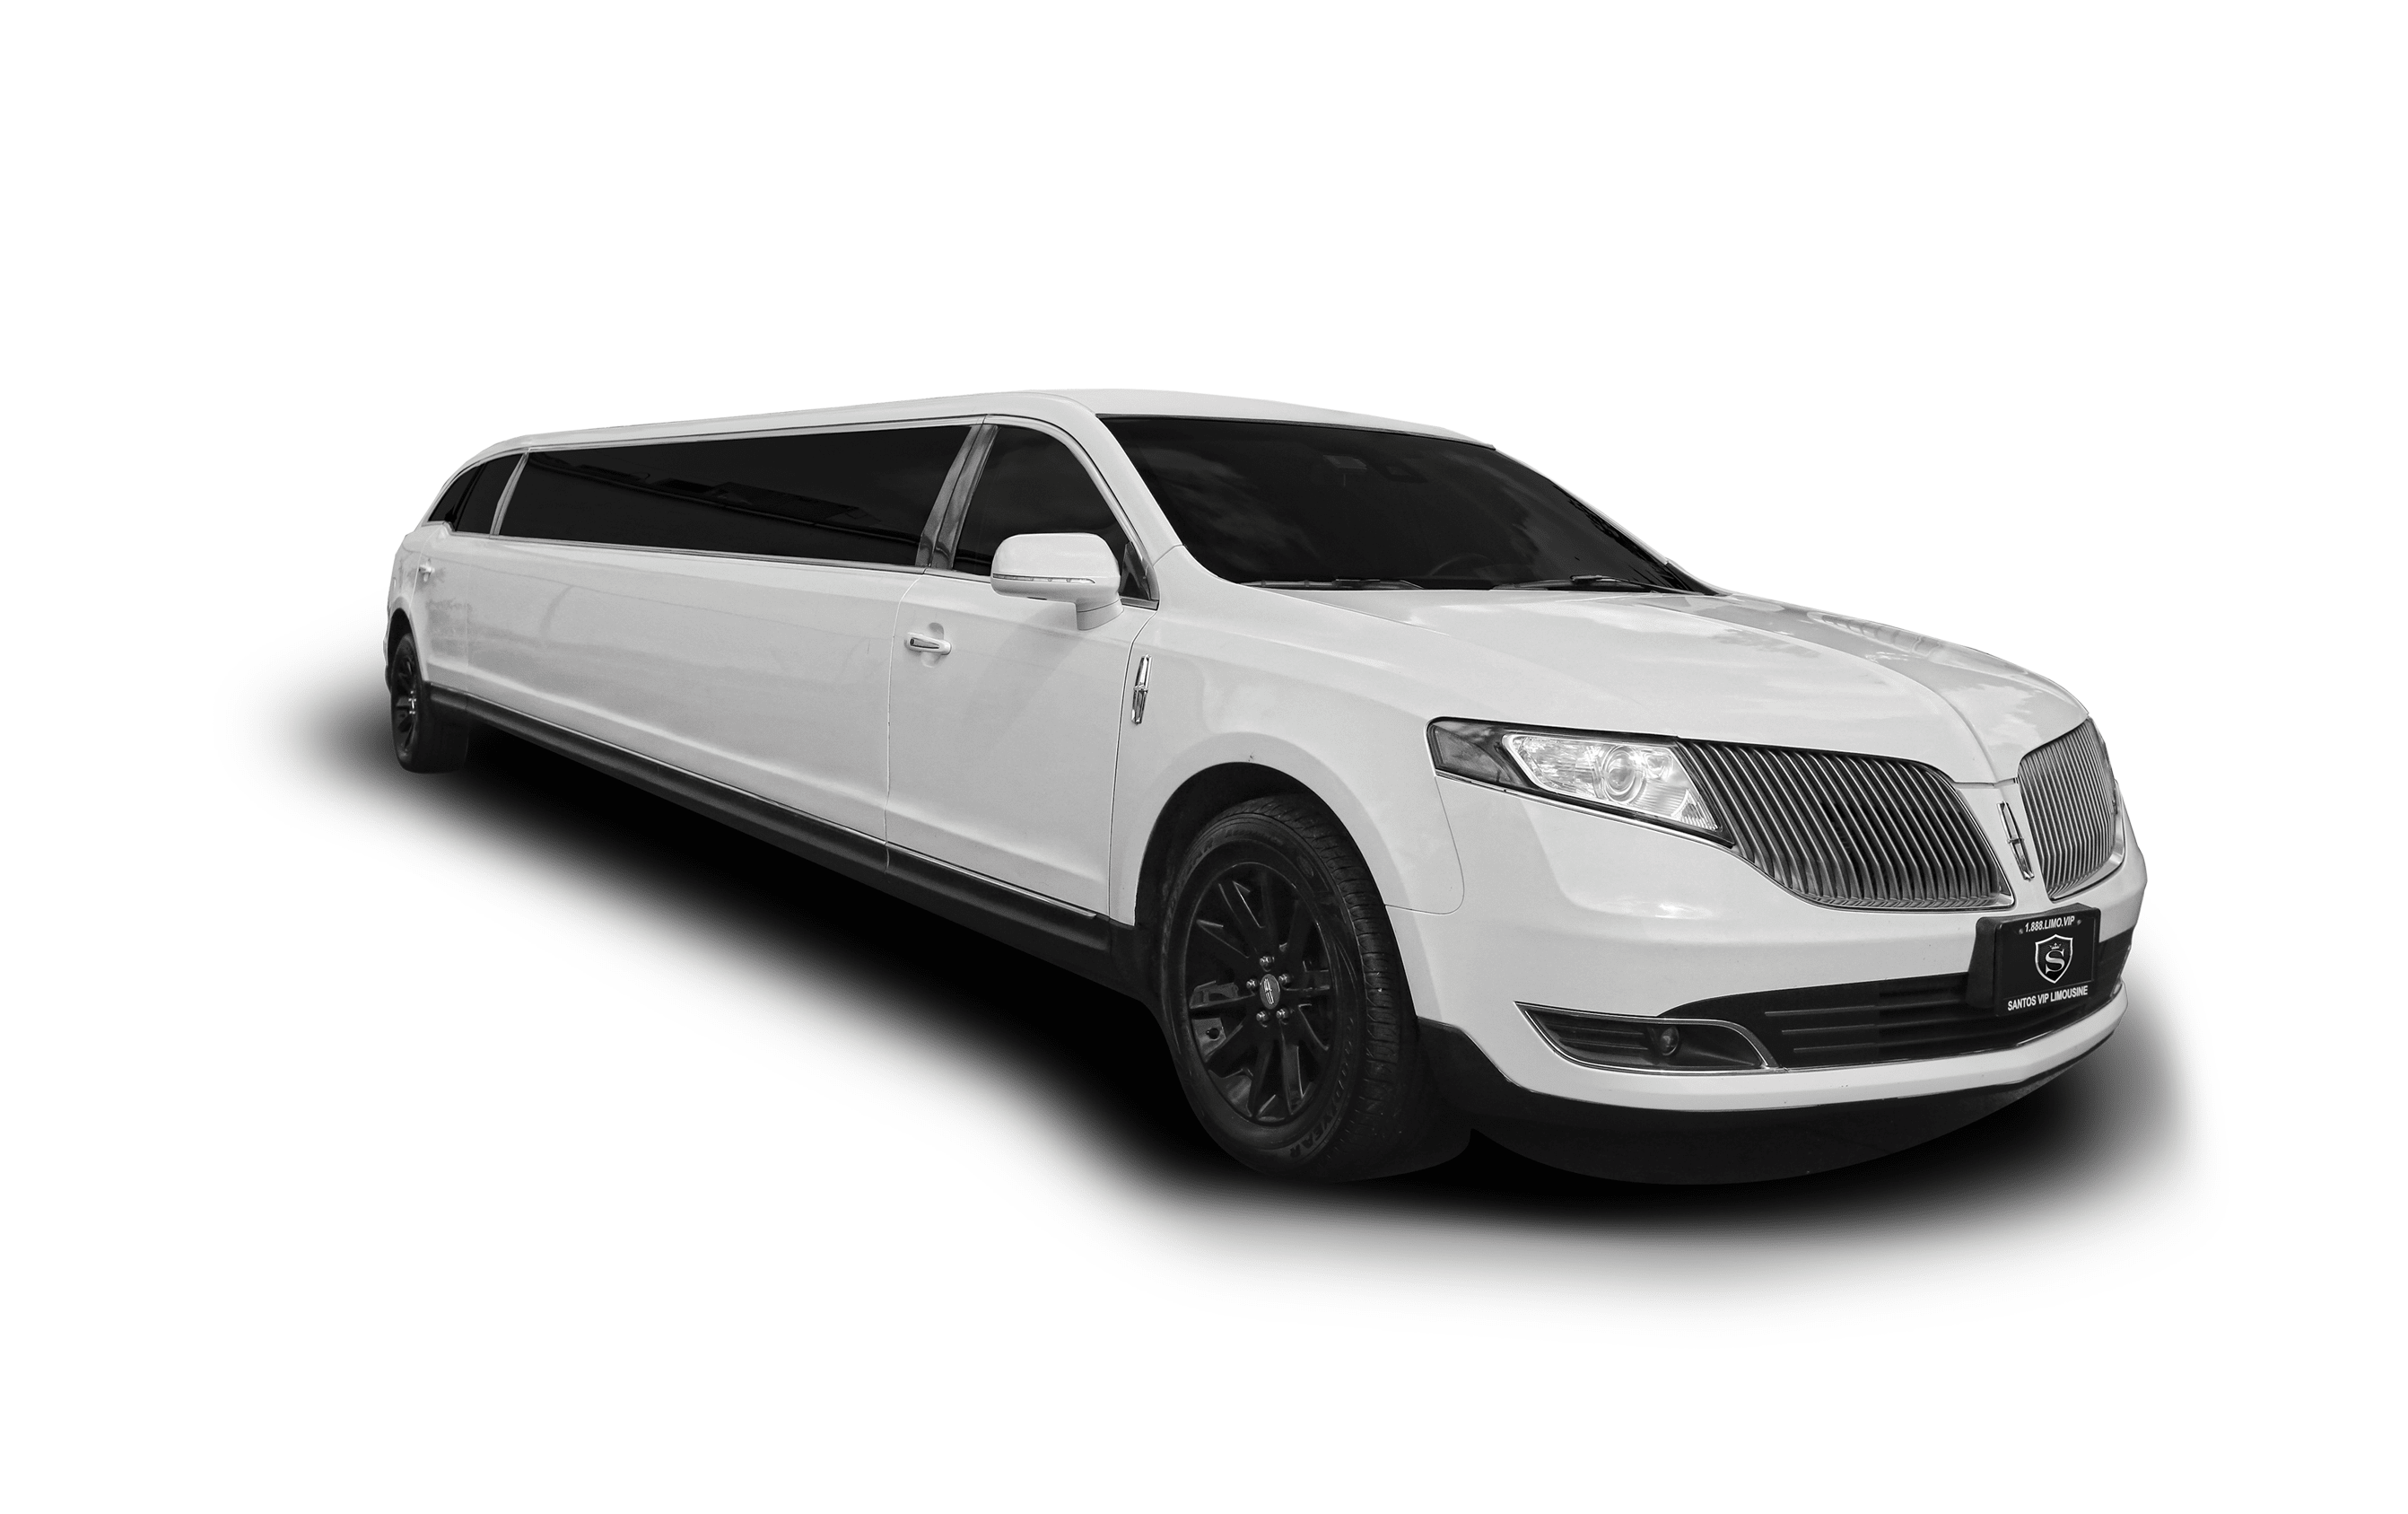 Lincoln MKT stretch limo for NJ Winery Tour and New Jersey Wine Tasting Trips in NJ